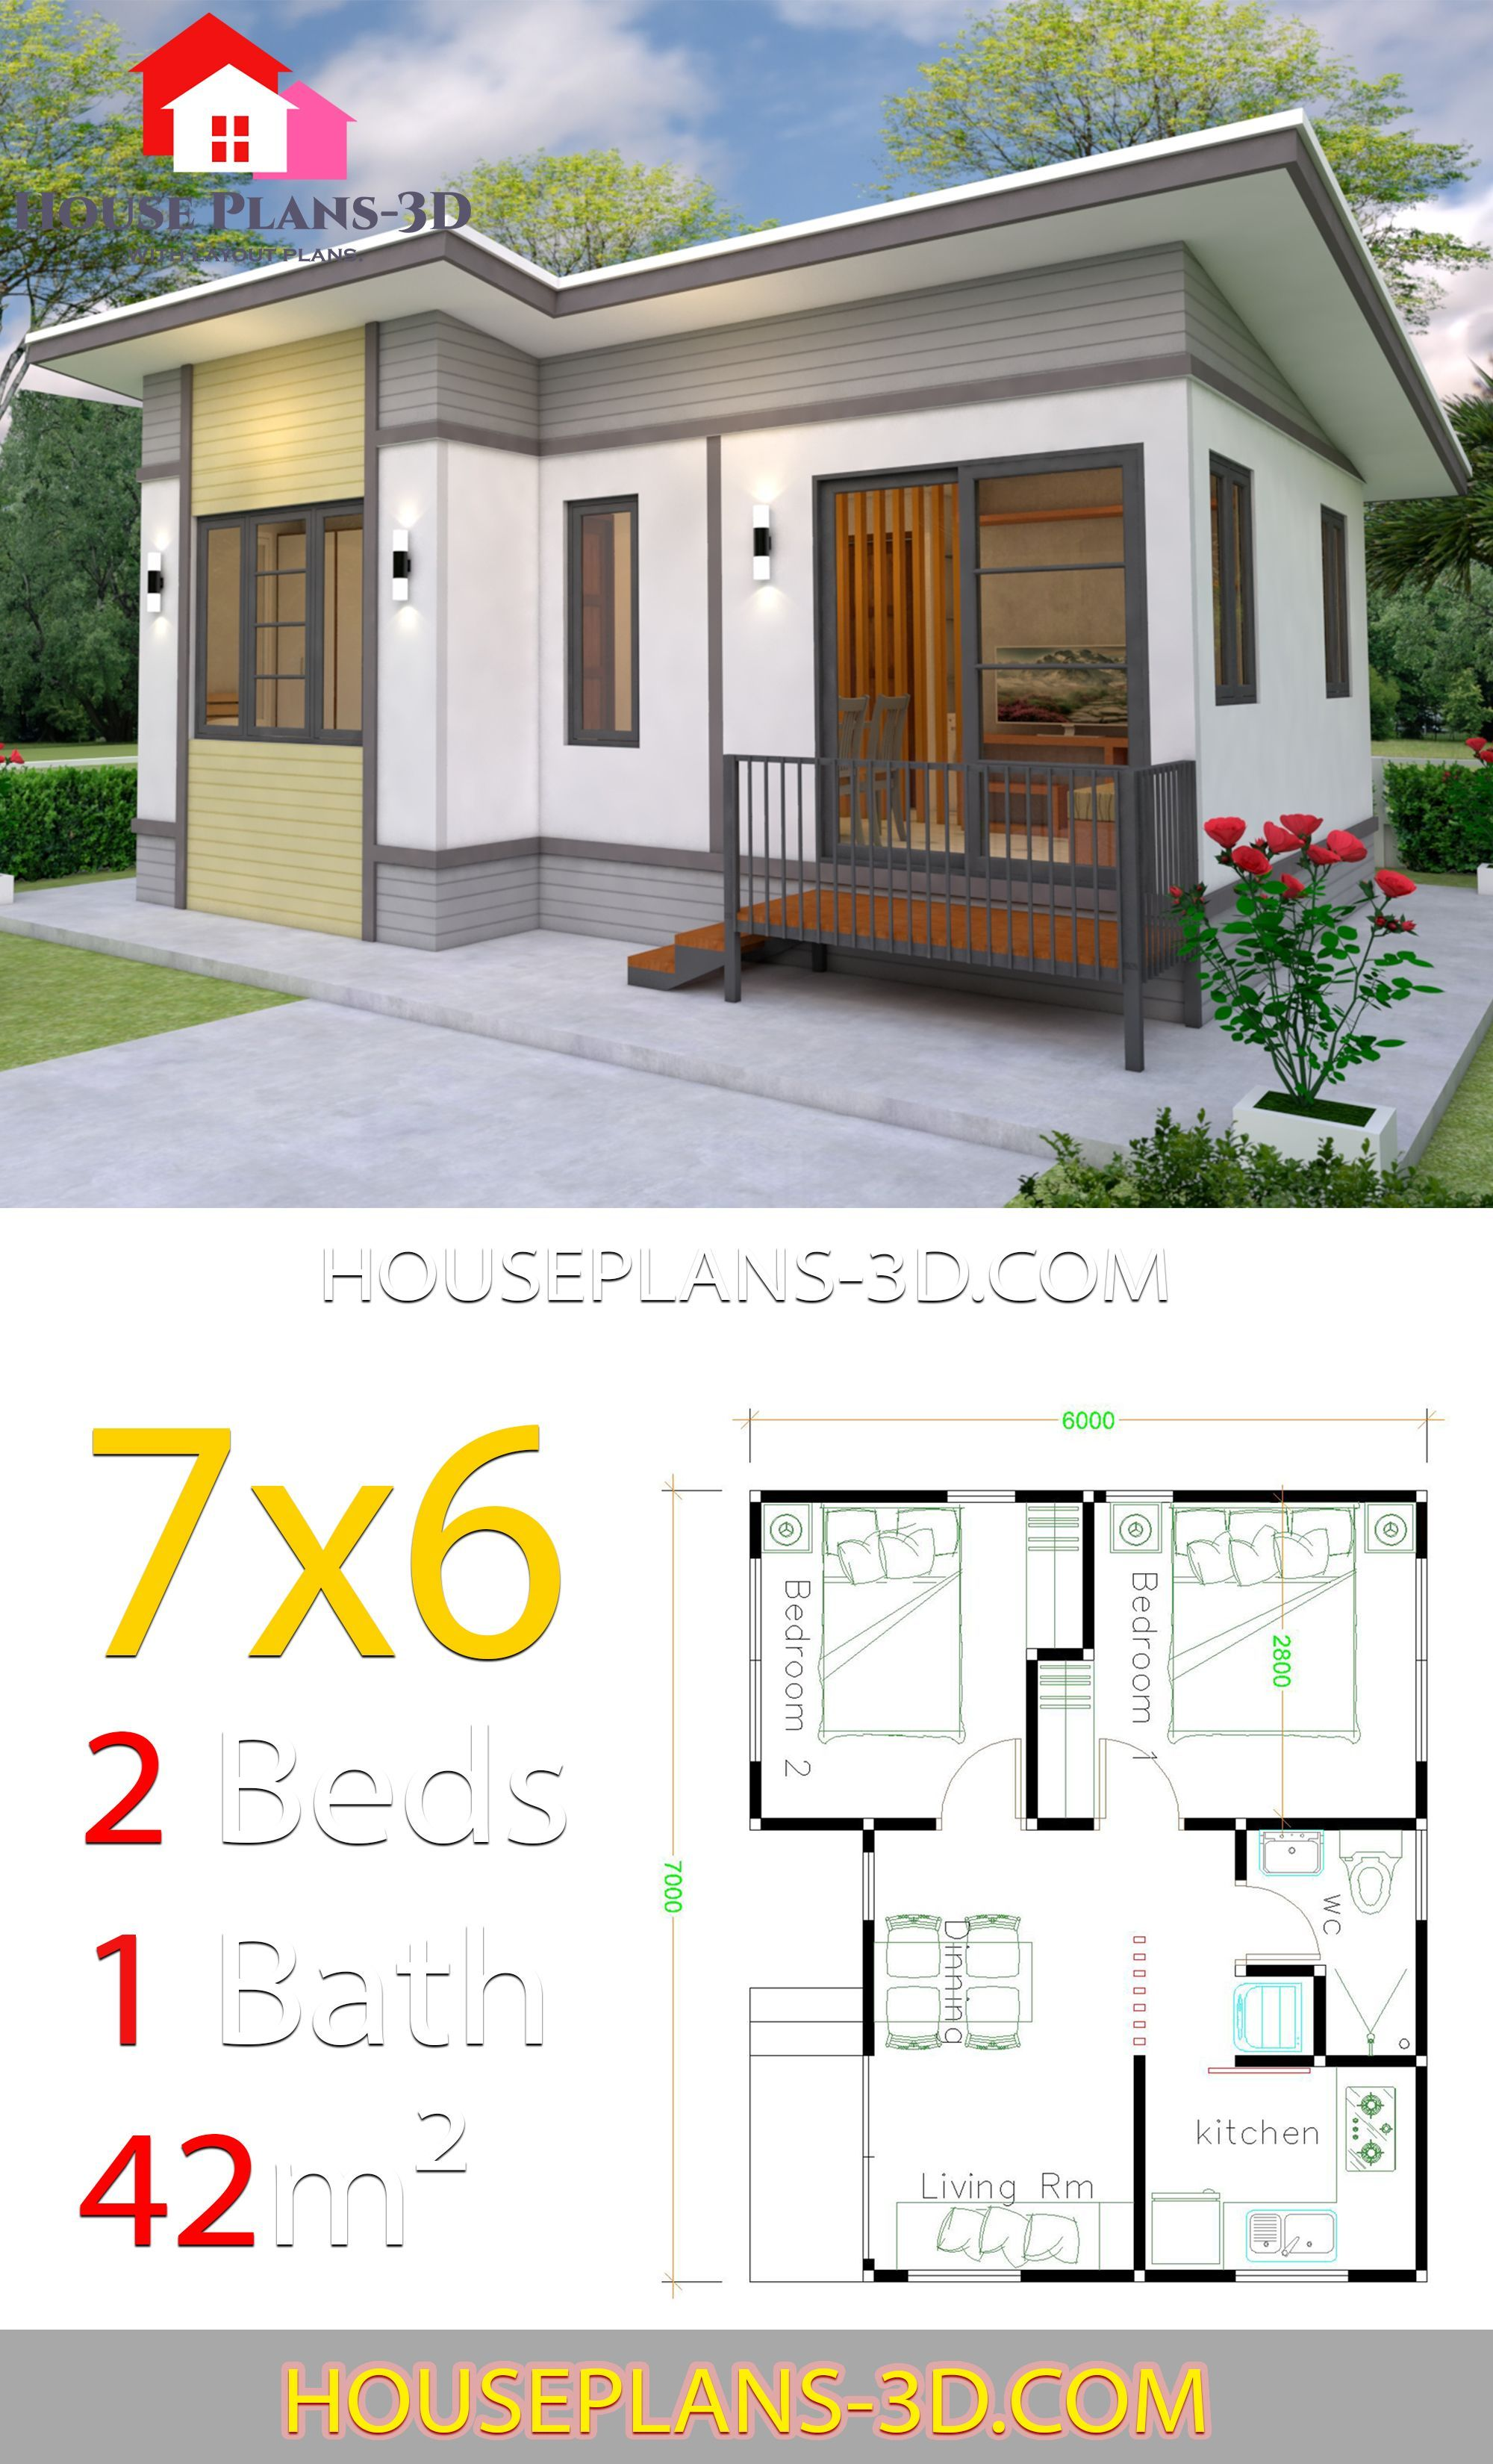 Small House Plans 7x6 With 2 Bedrooms House Plans 3d 483996291206312934 House Plans Small House Floor Plans My House Plans